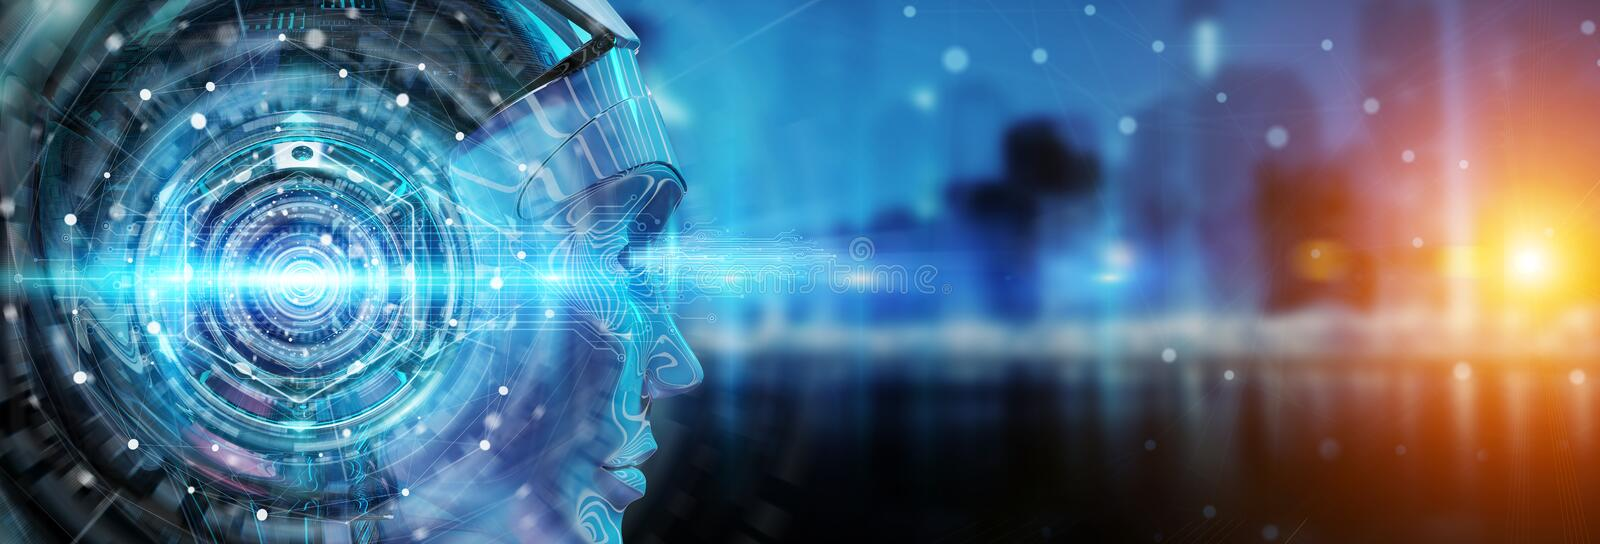 Cyborg head using artificial intelligence to create digital interface 3D rendering vector illustration